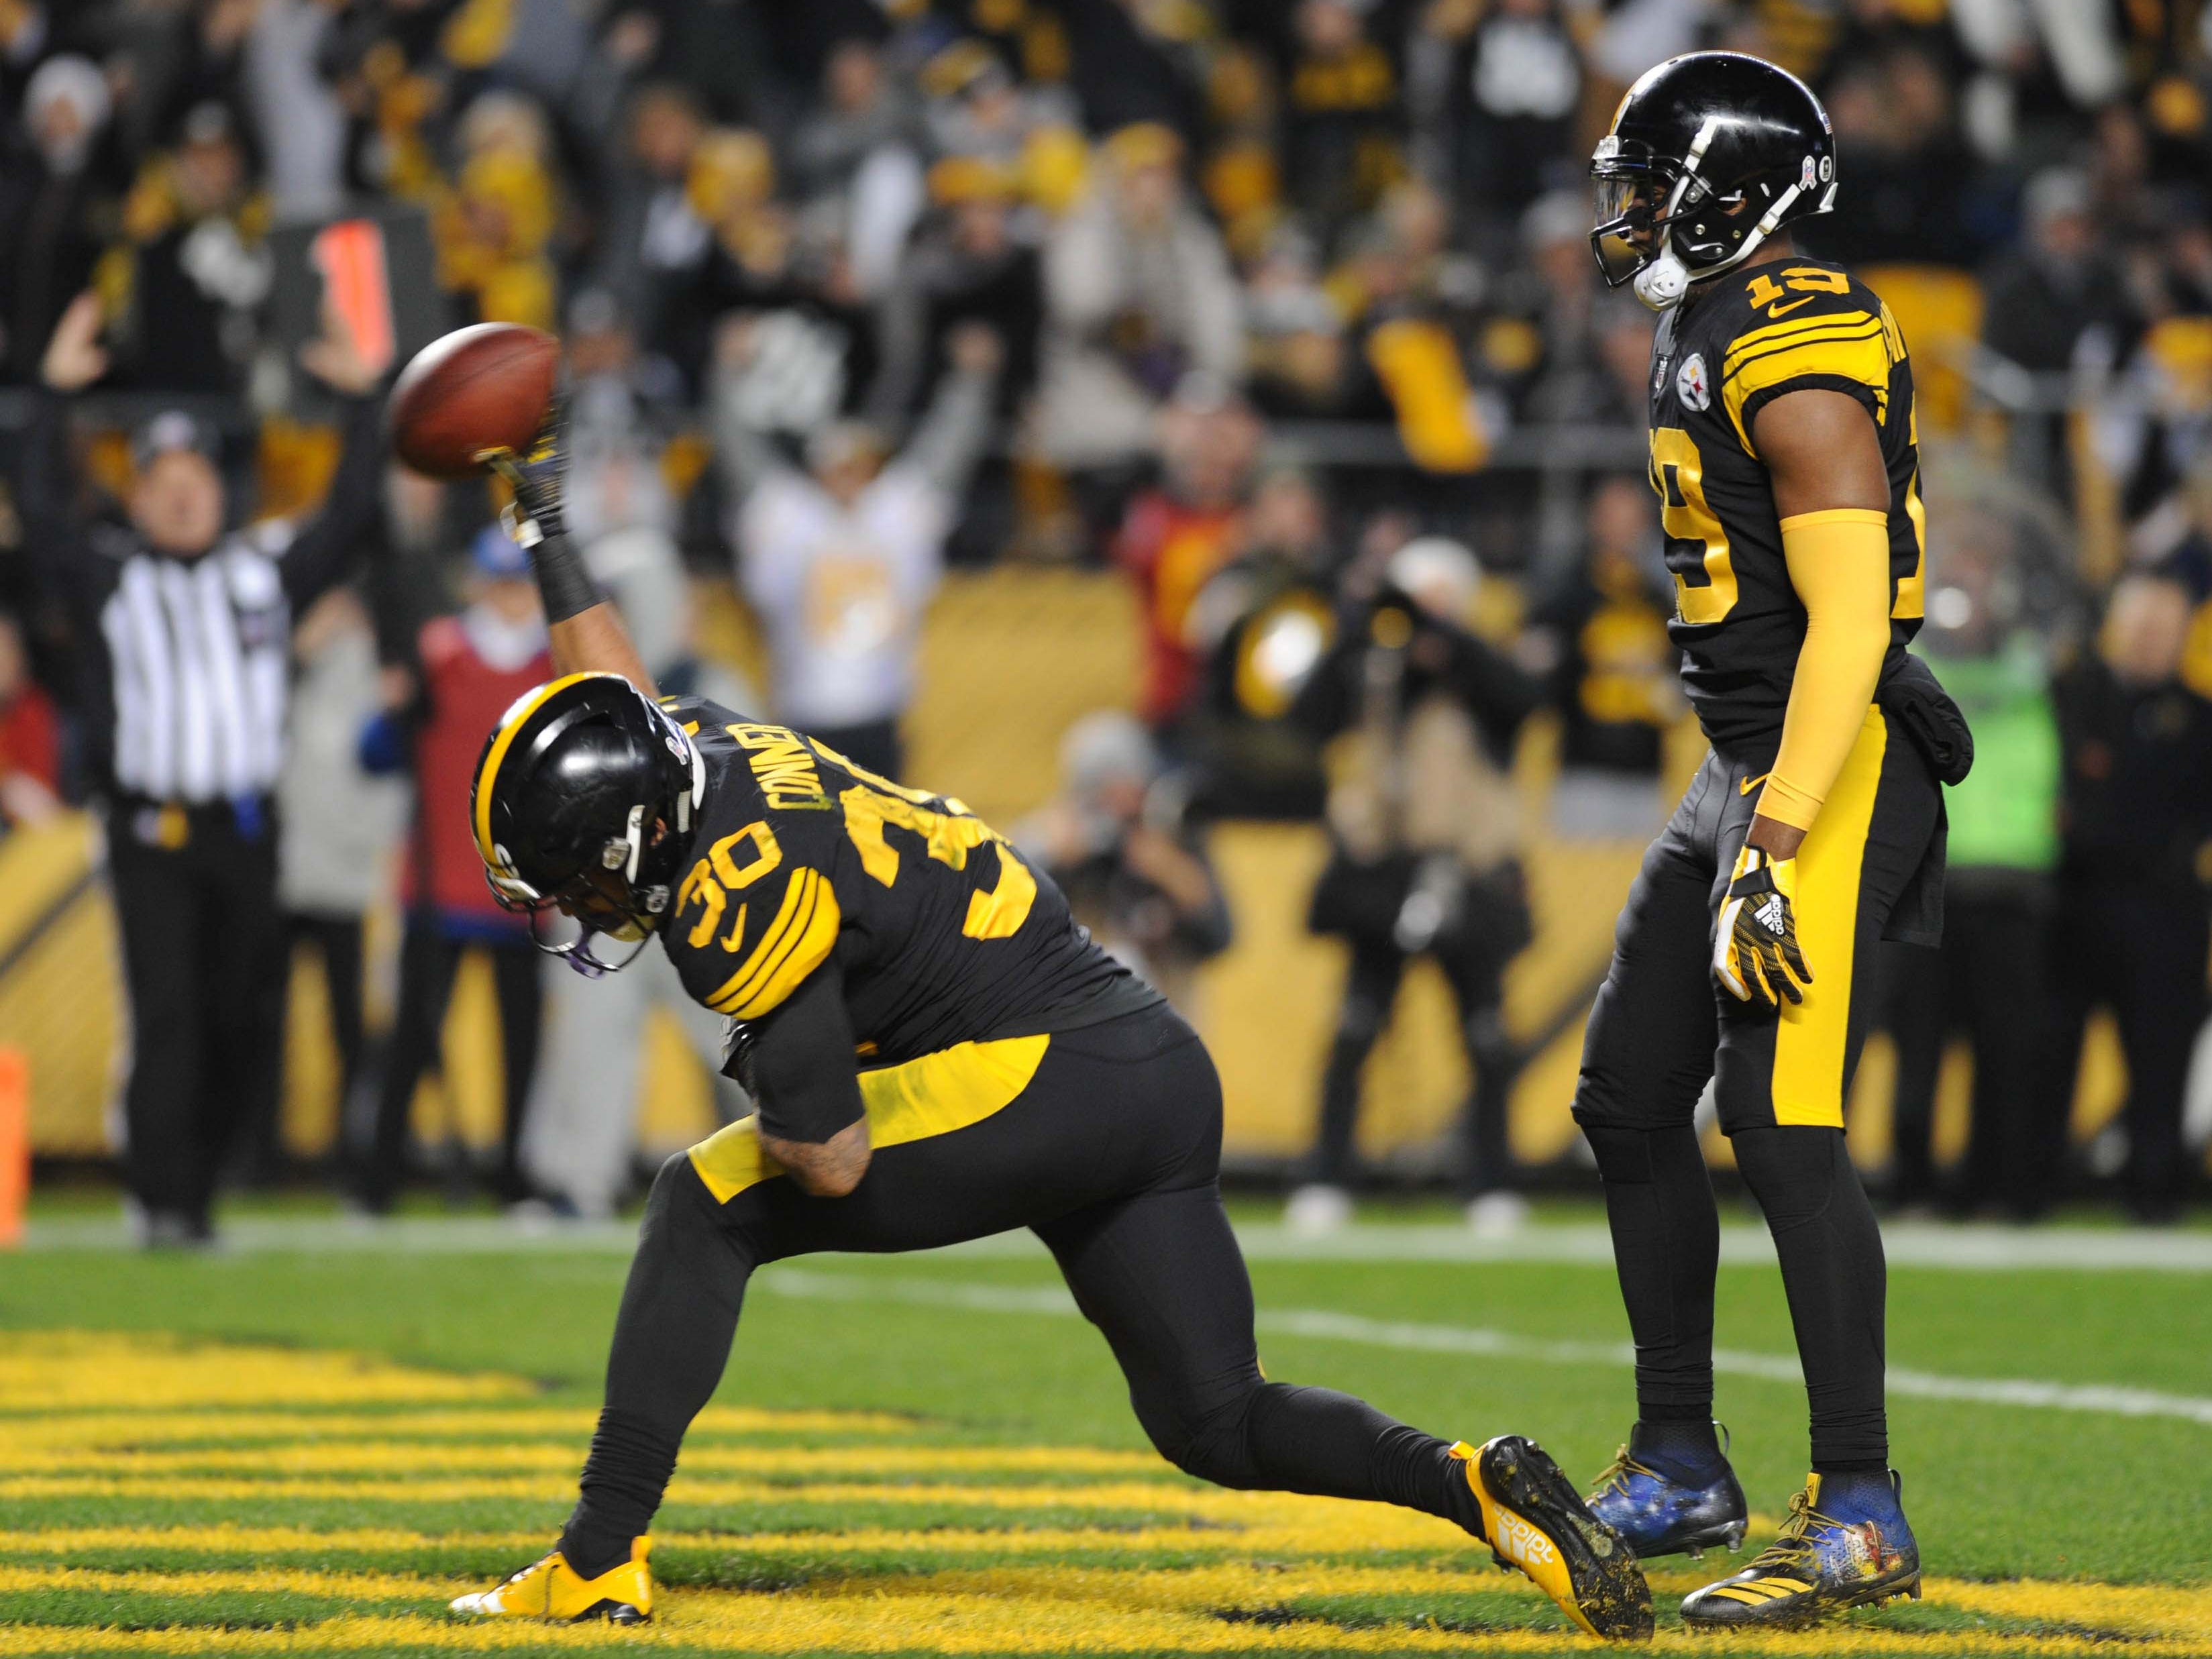 Pittsburgh Steelers running back  James Conner celebrates a touchdown against the Carolina Panthers at Heinz Field. The Steelers won the game, 52-21.